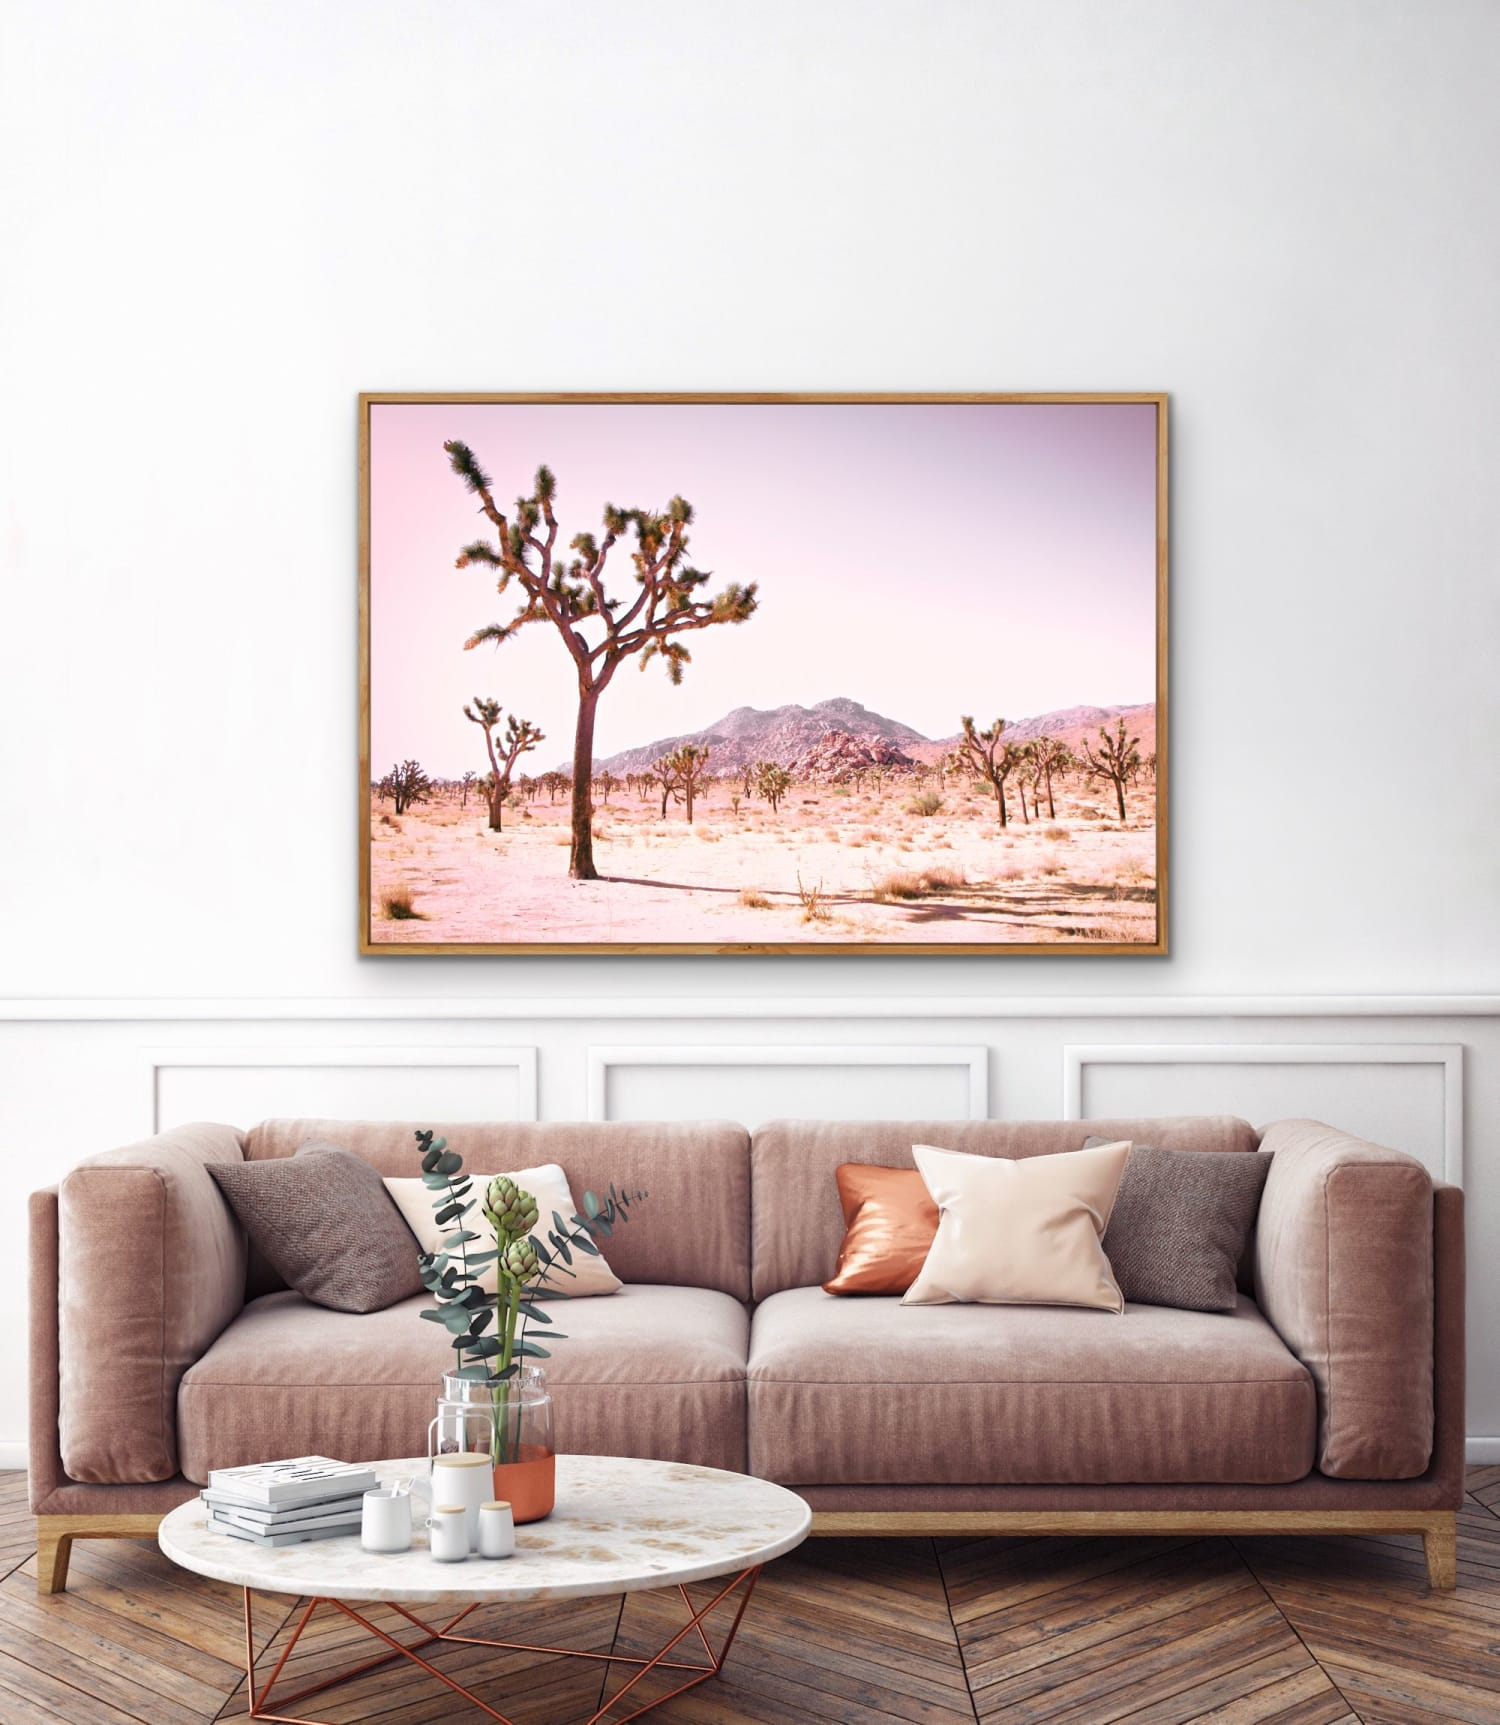 Beautiful Desert Photograph with Joshua Trees and Pastel Overtones